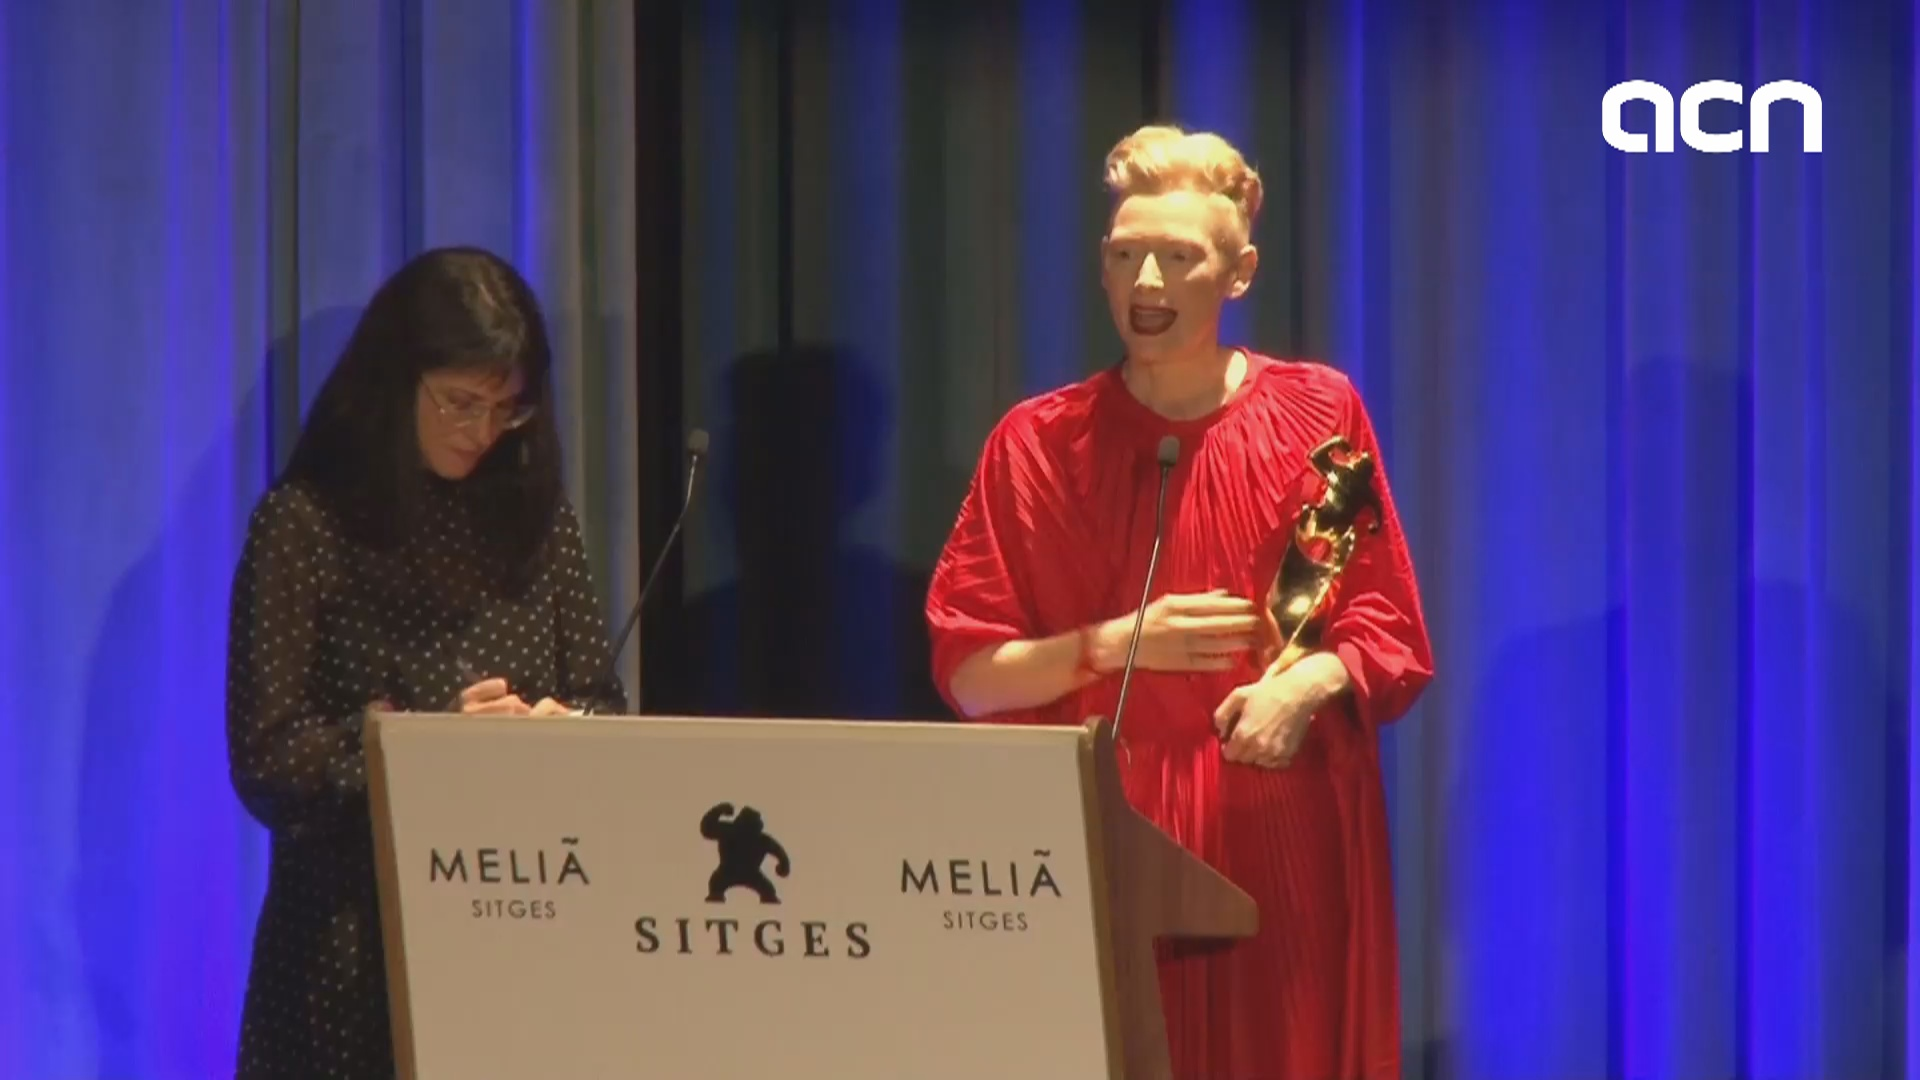 Tilda Swinton delivers an emotional acceptance speech for her Grand Honorary Award